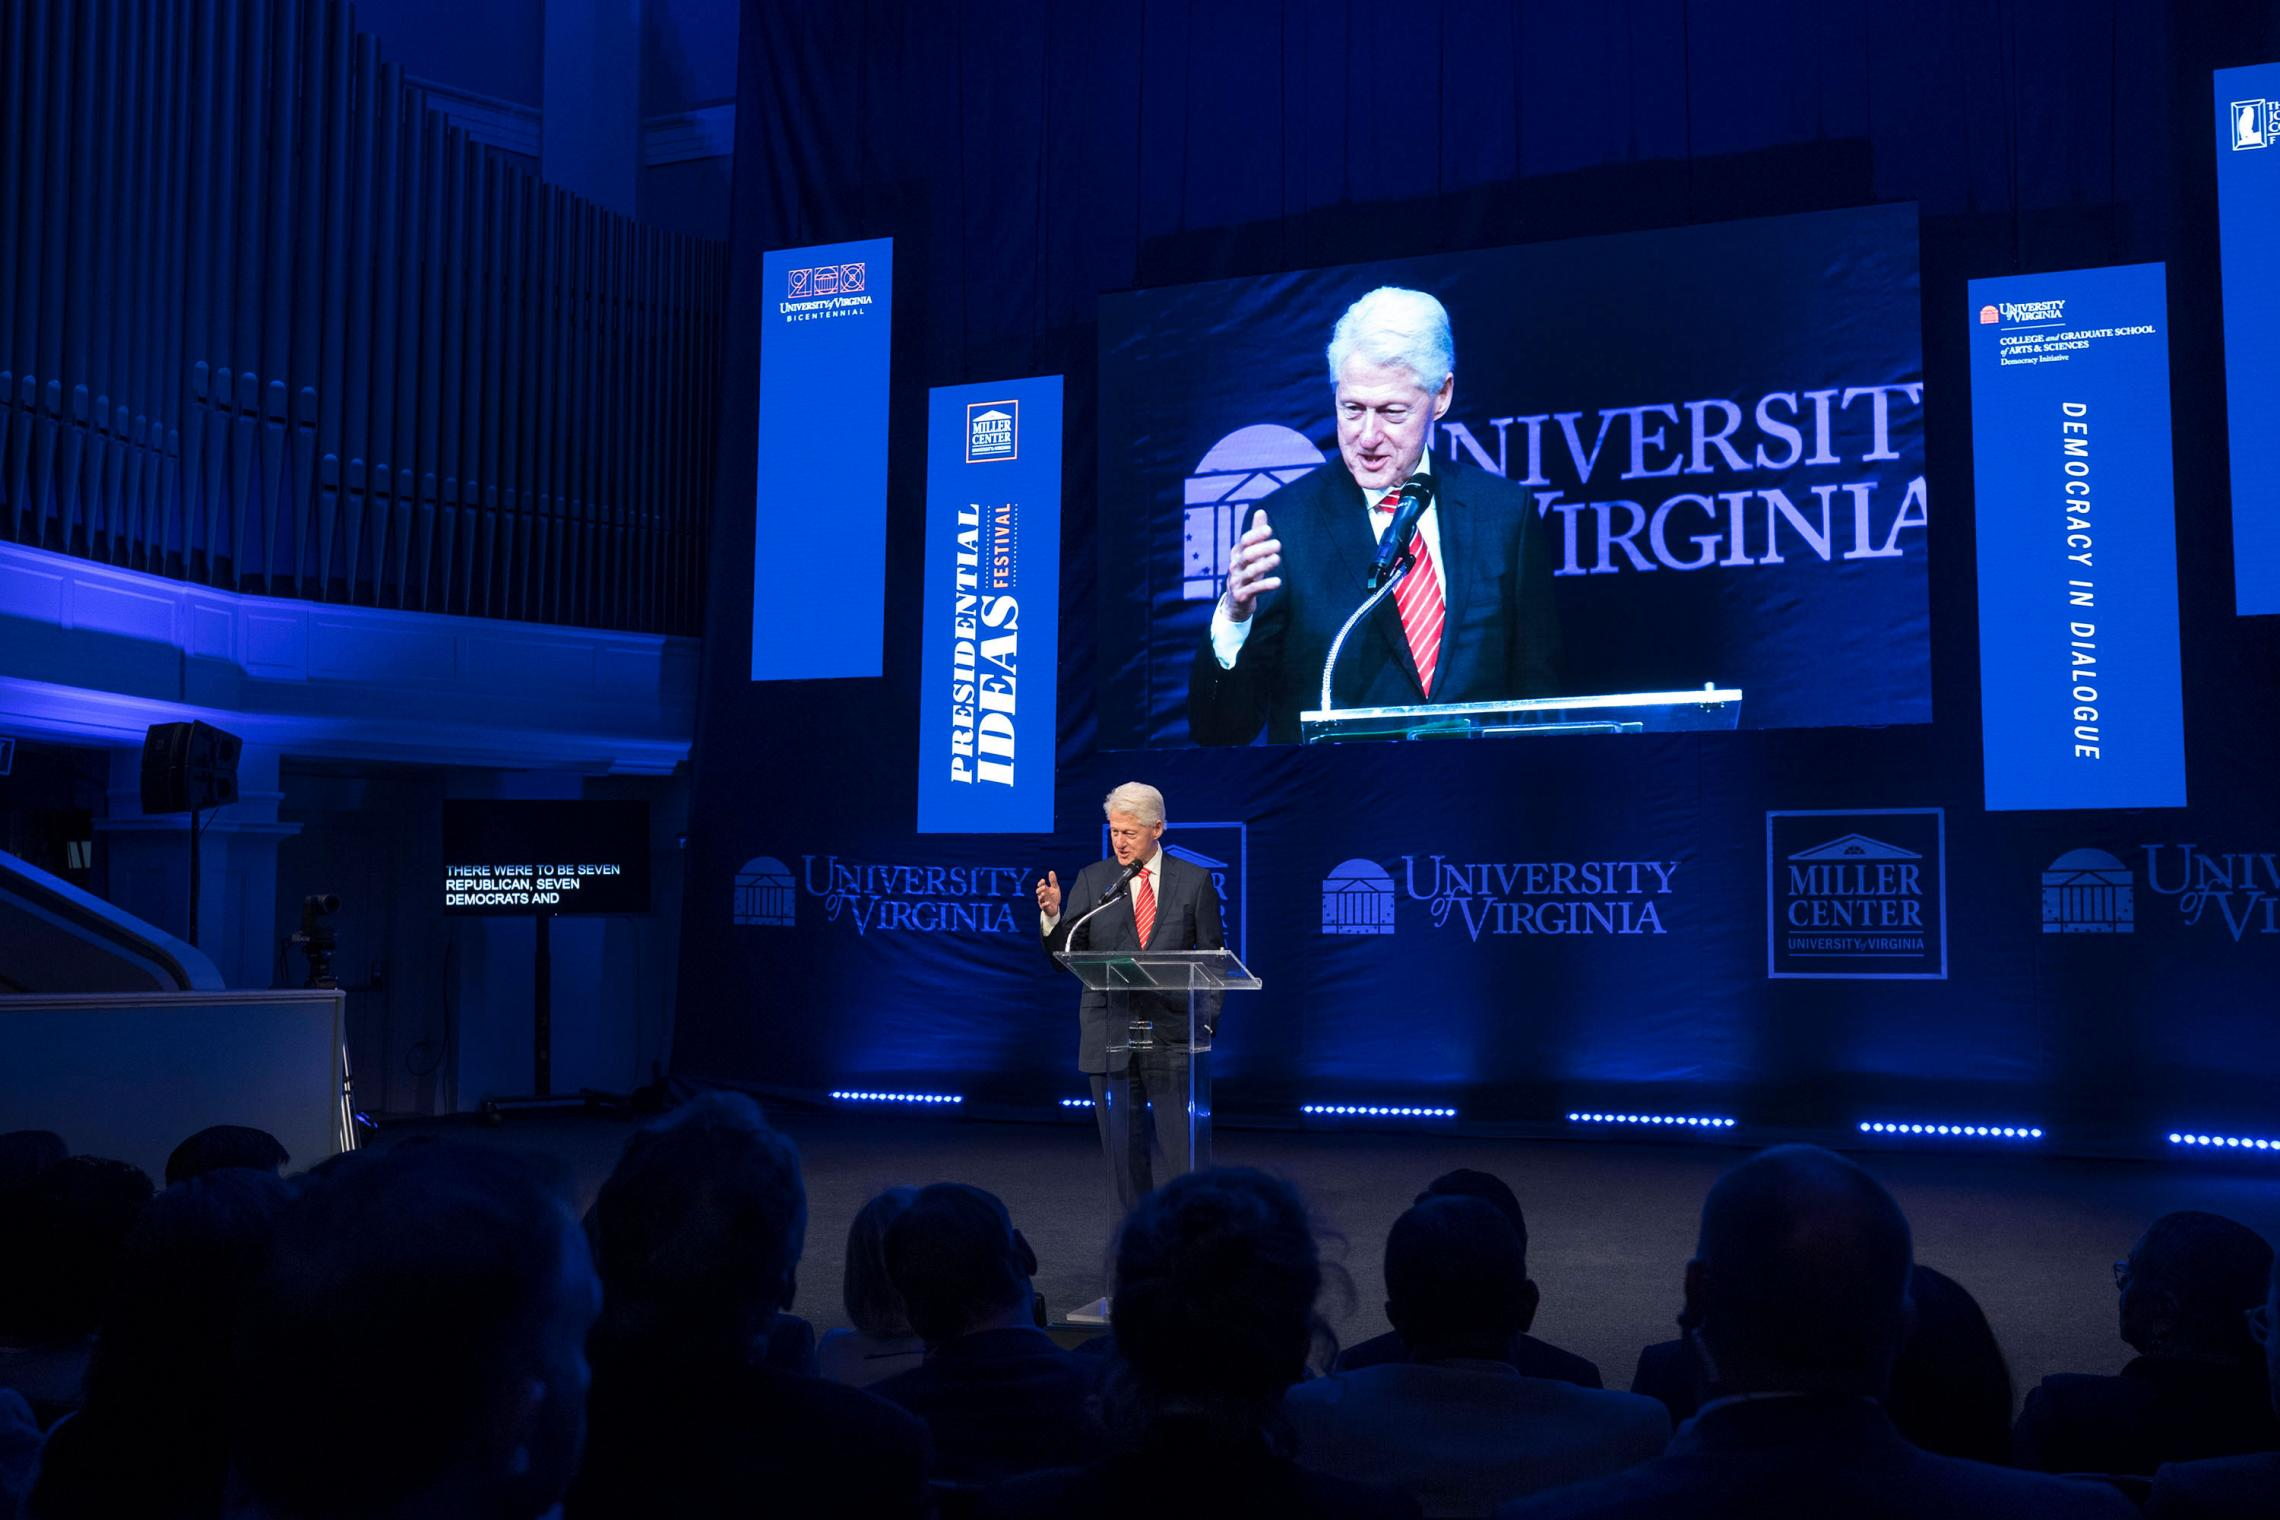 Former President Bill Clinton closed out the festival on Friday, ending three days of discussion between White House veterans, policymakers, UVA faculty members, students and audience members. (Photo by Dan Addison, University Communications)